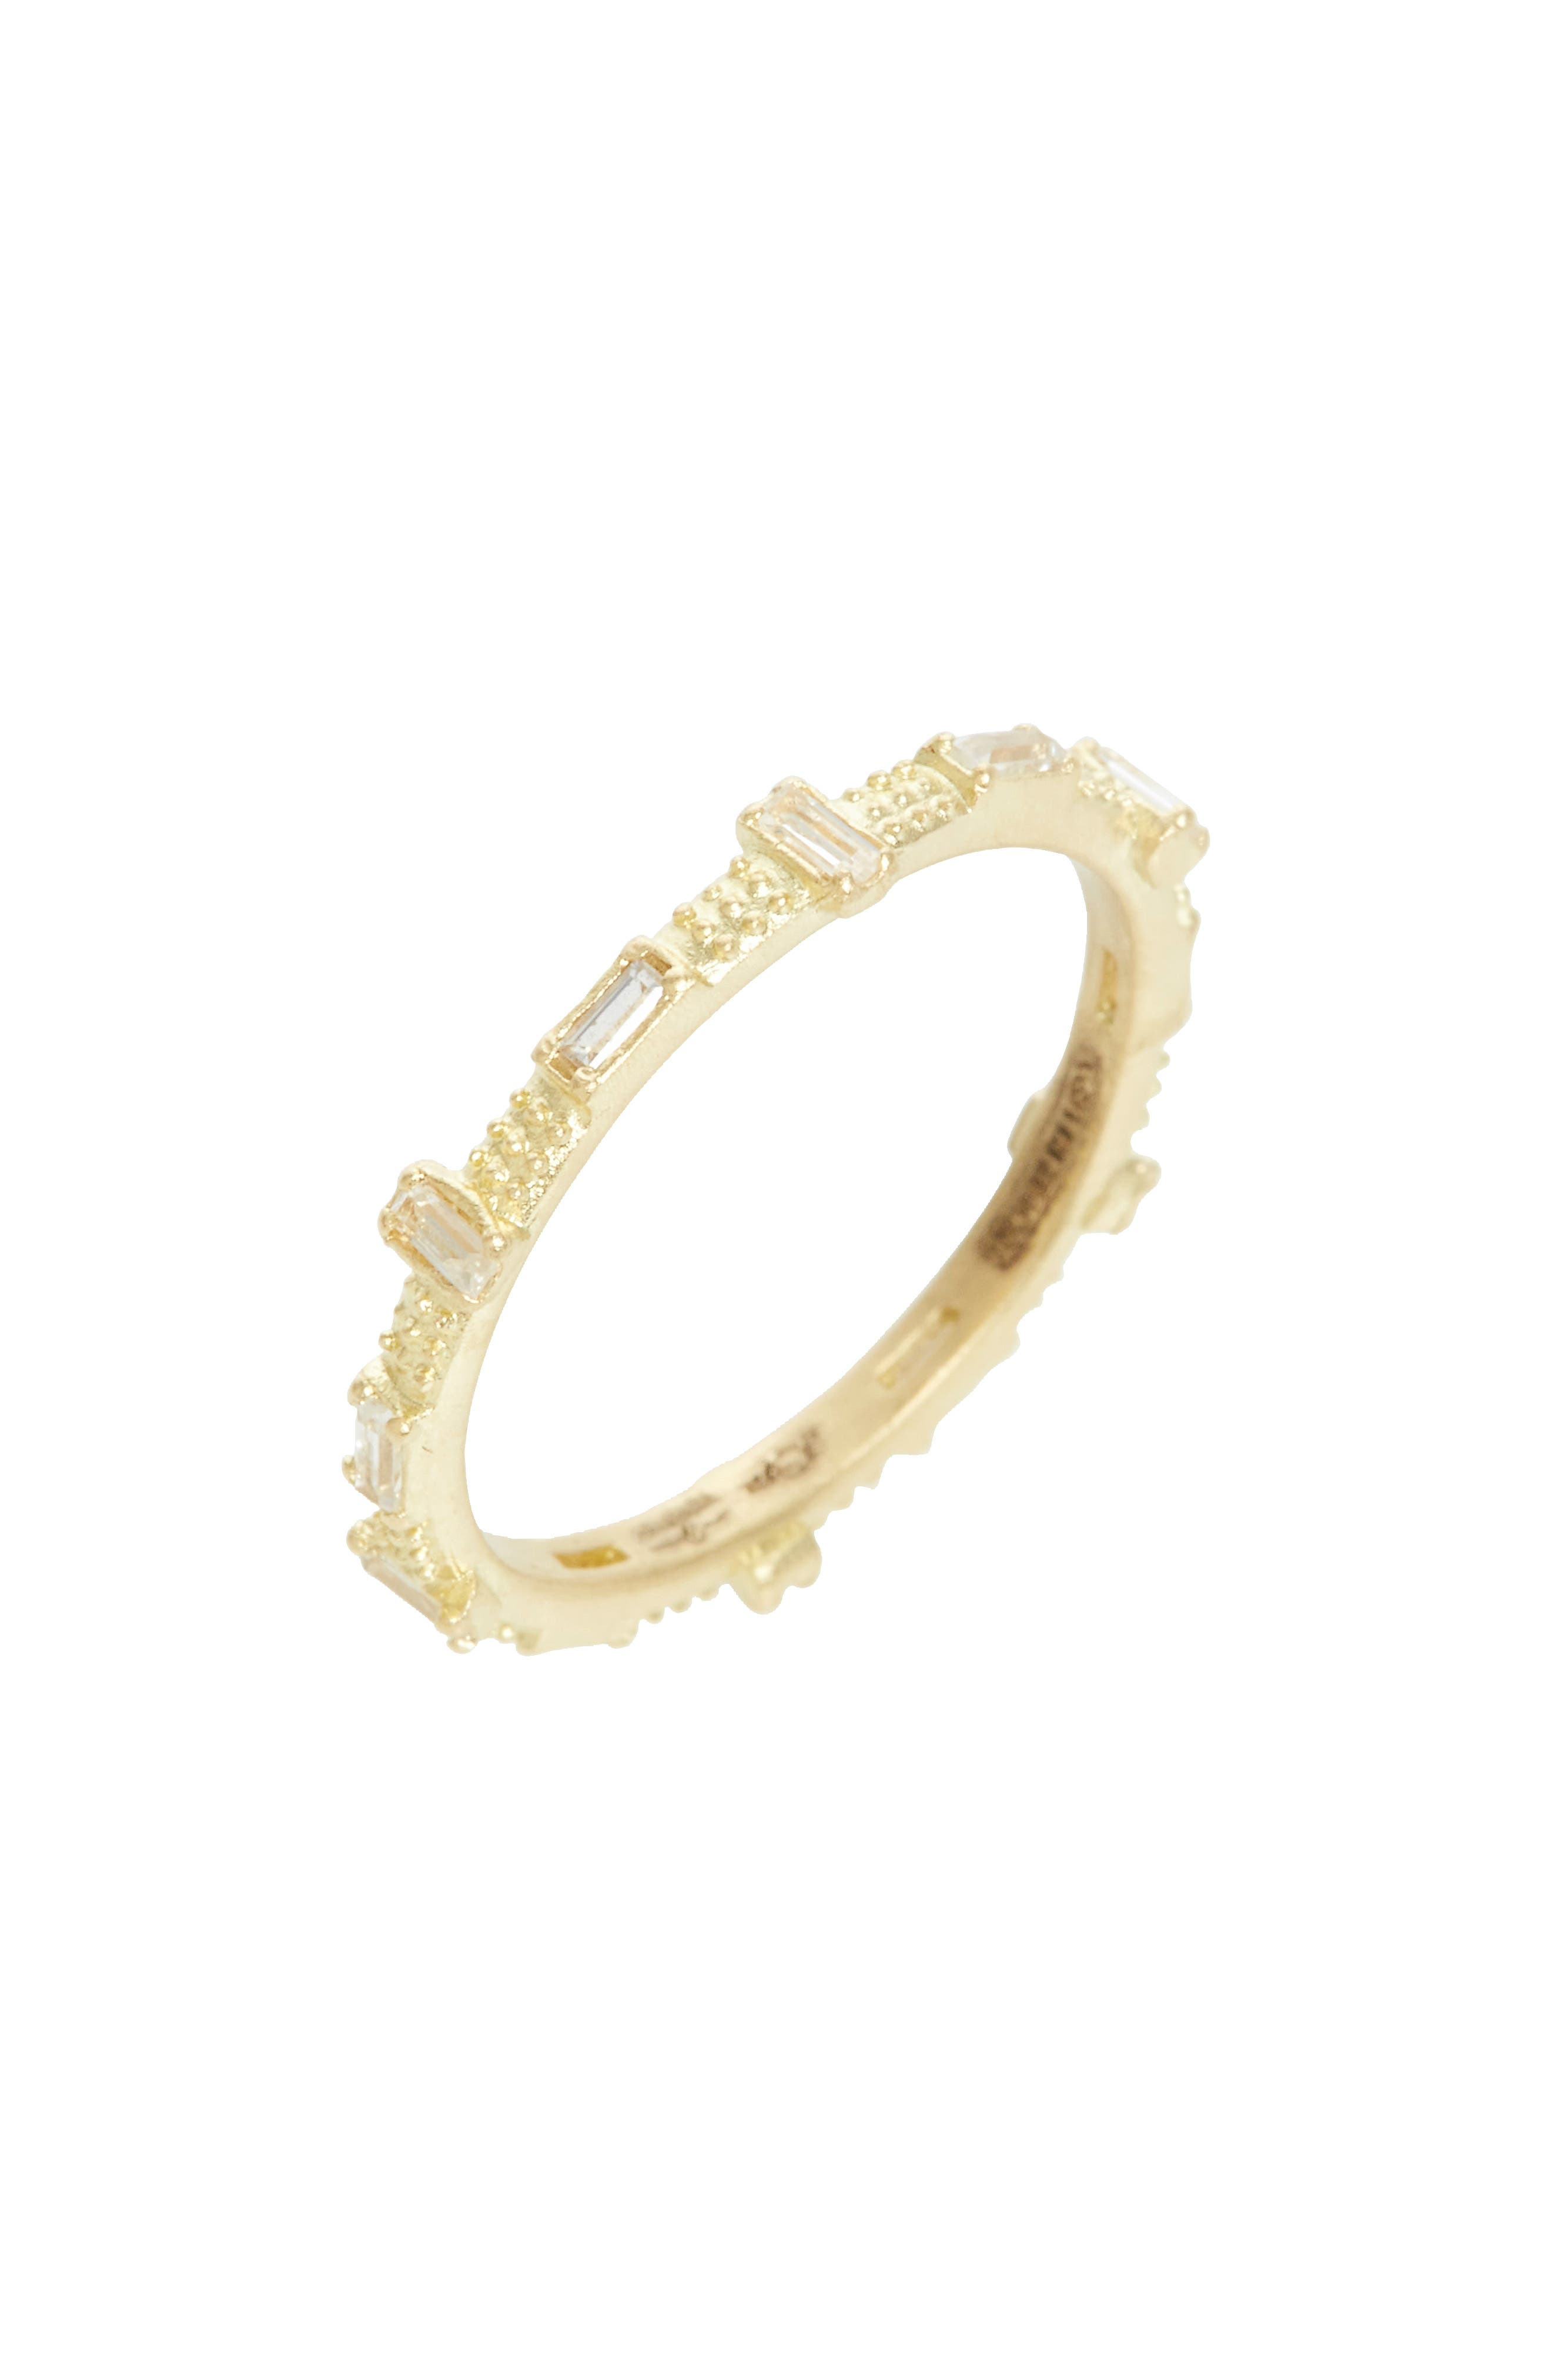 Sueño Baguette Sapphire Stacking Ring,                             Main thumbnail 1, color,                             GOLD